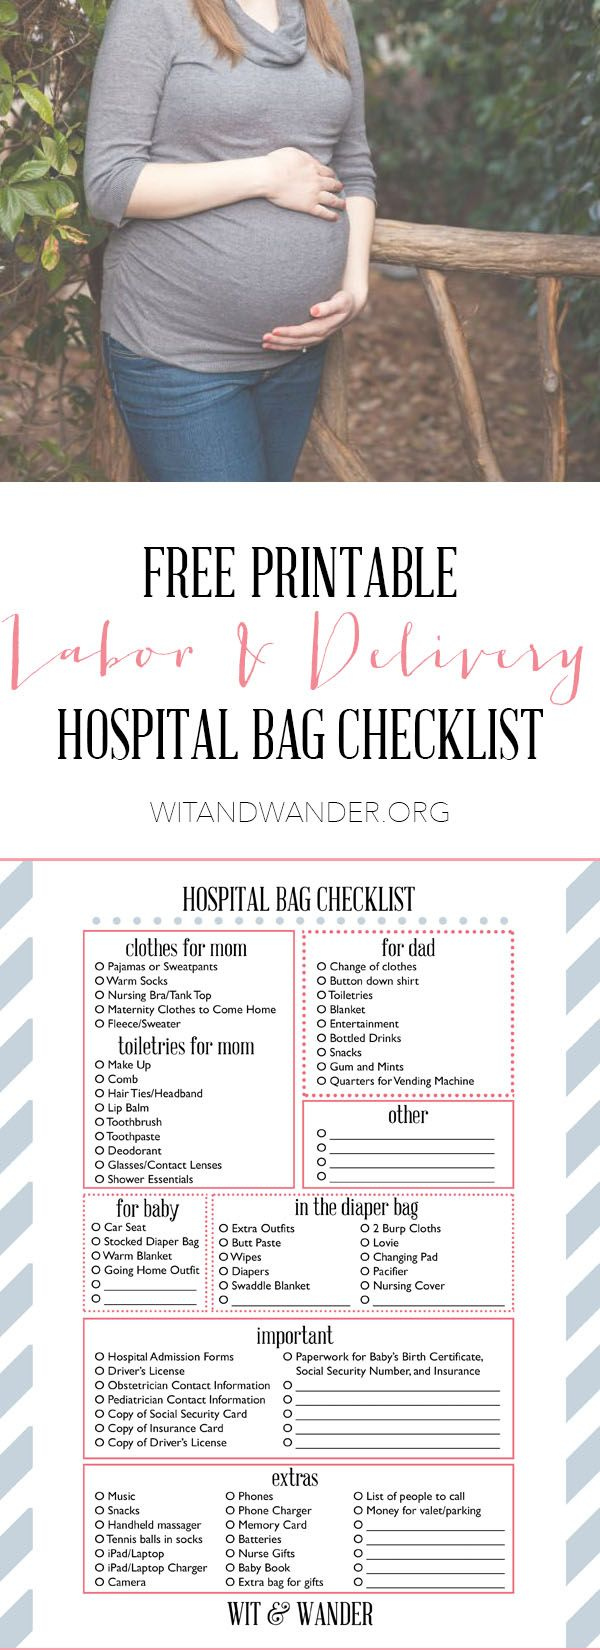 Printable Maternity Hospital Bag Checklist Wit Wander Indian